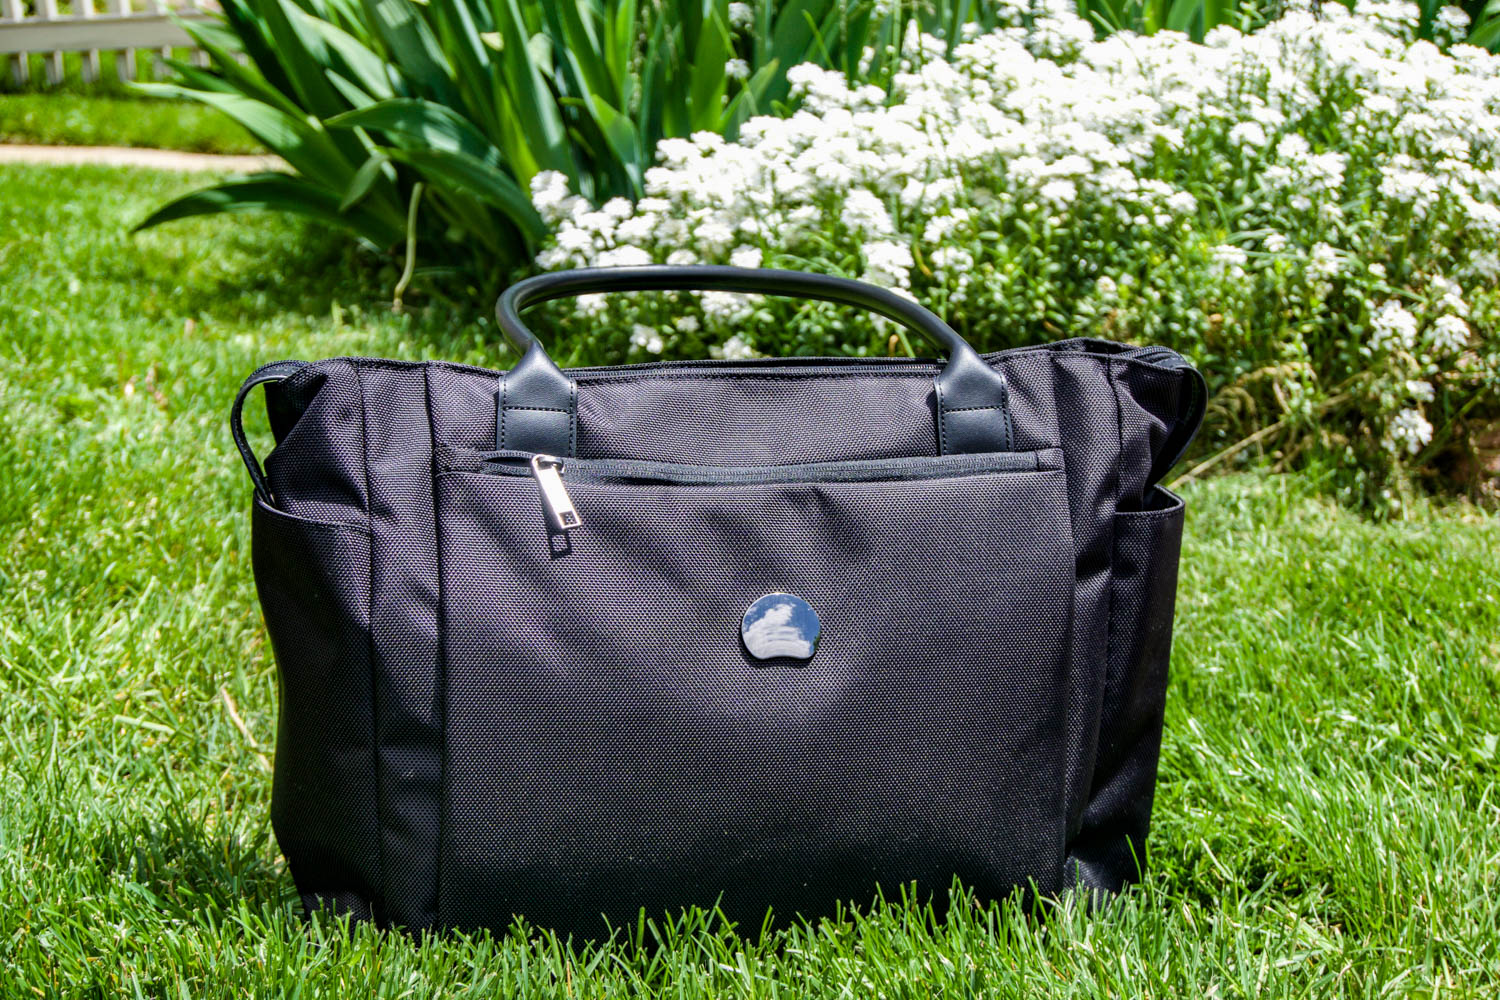 The Best Travel Tote Bag The Delsey Montmartre